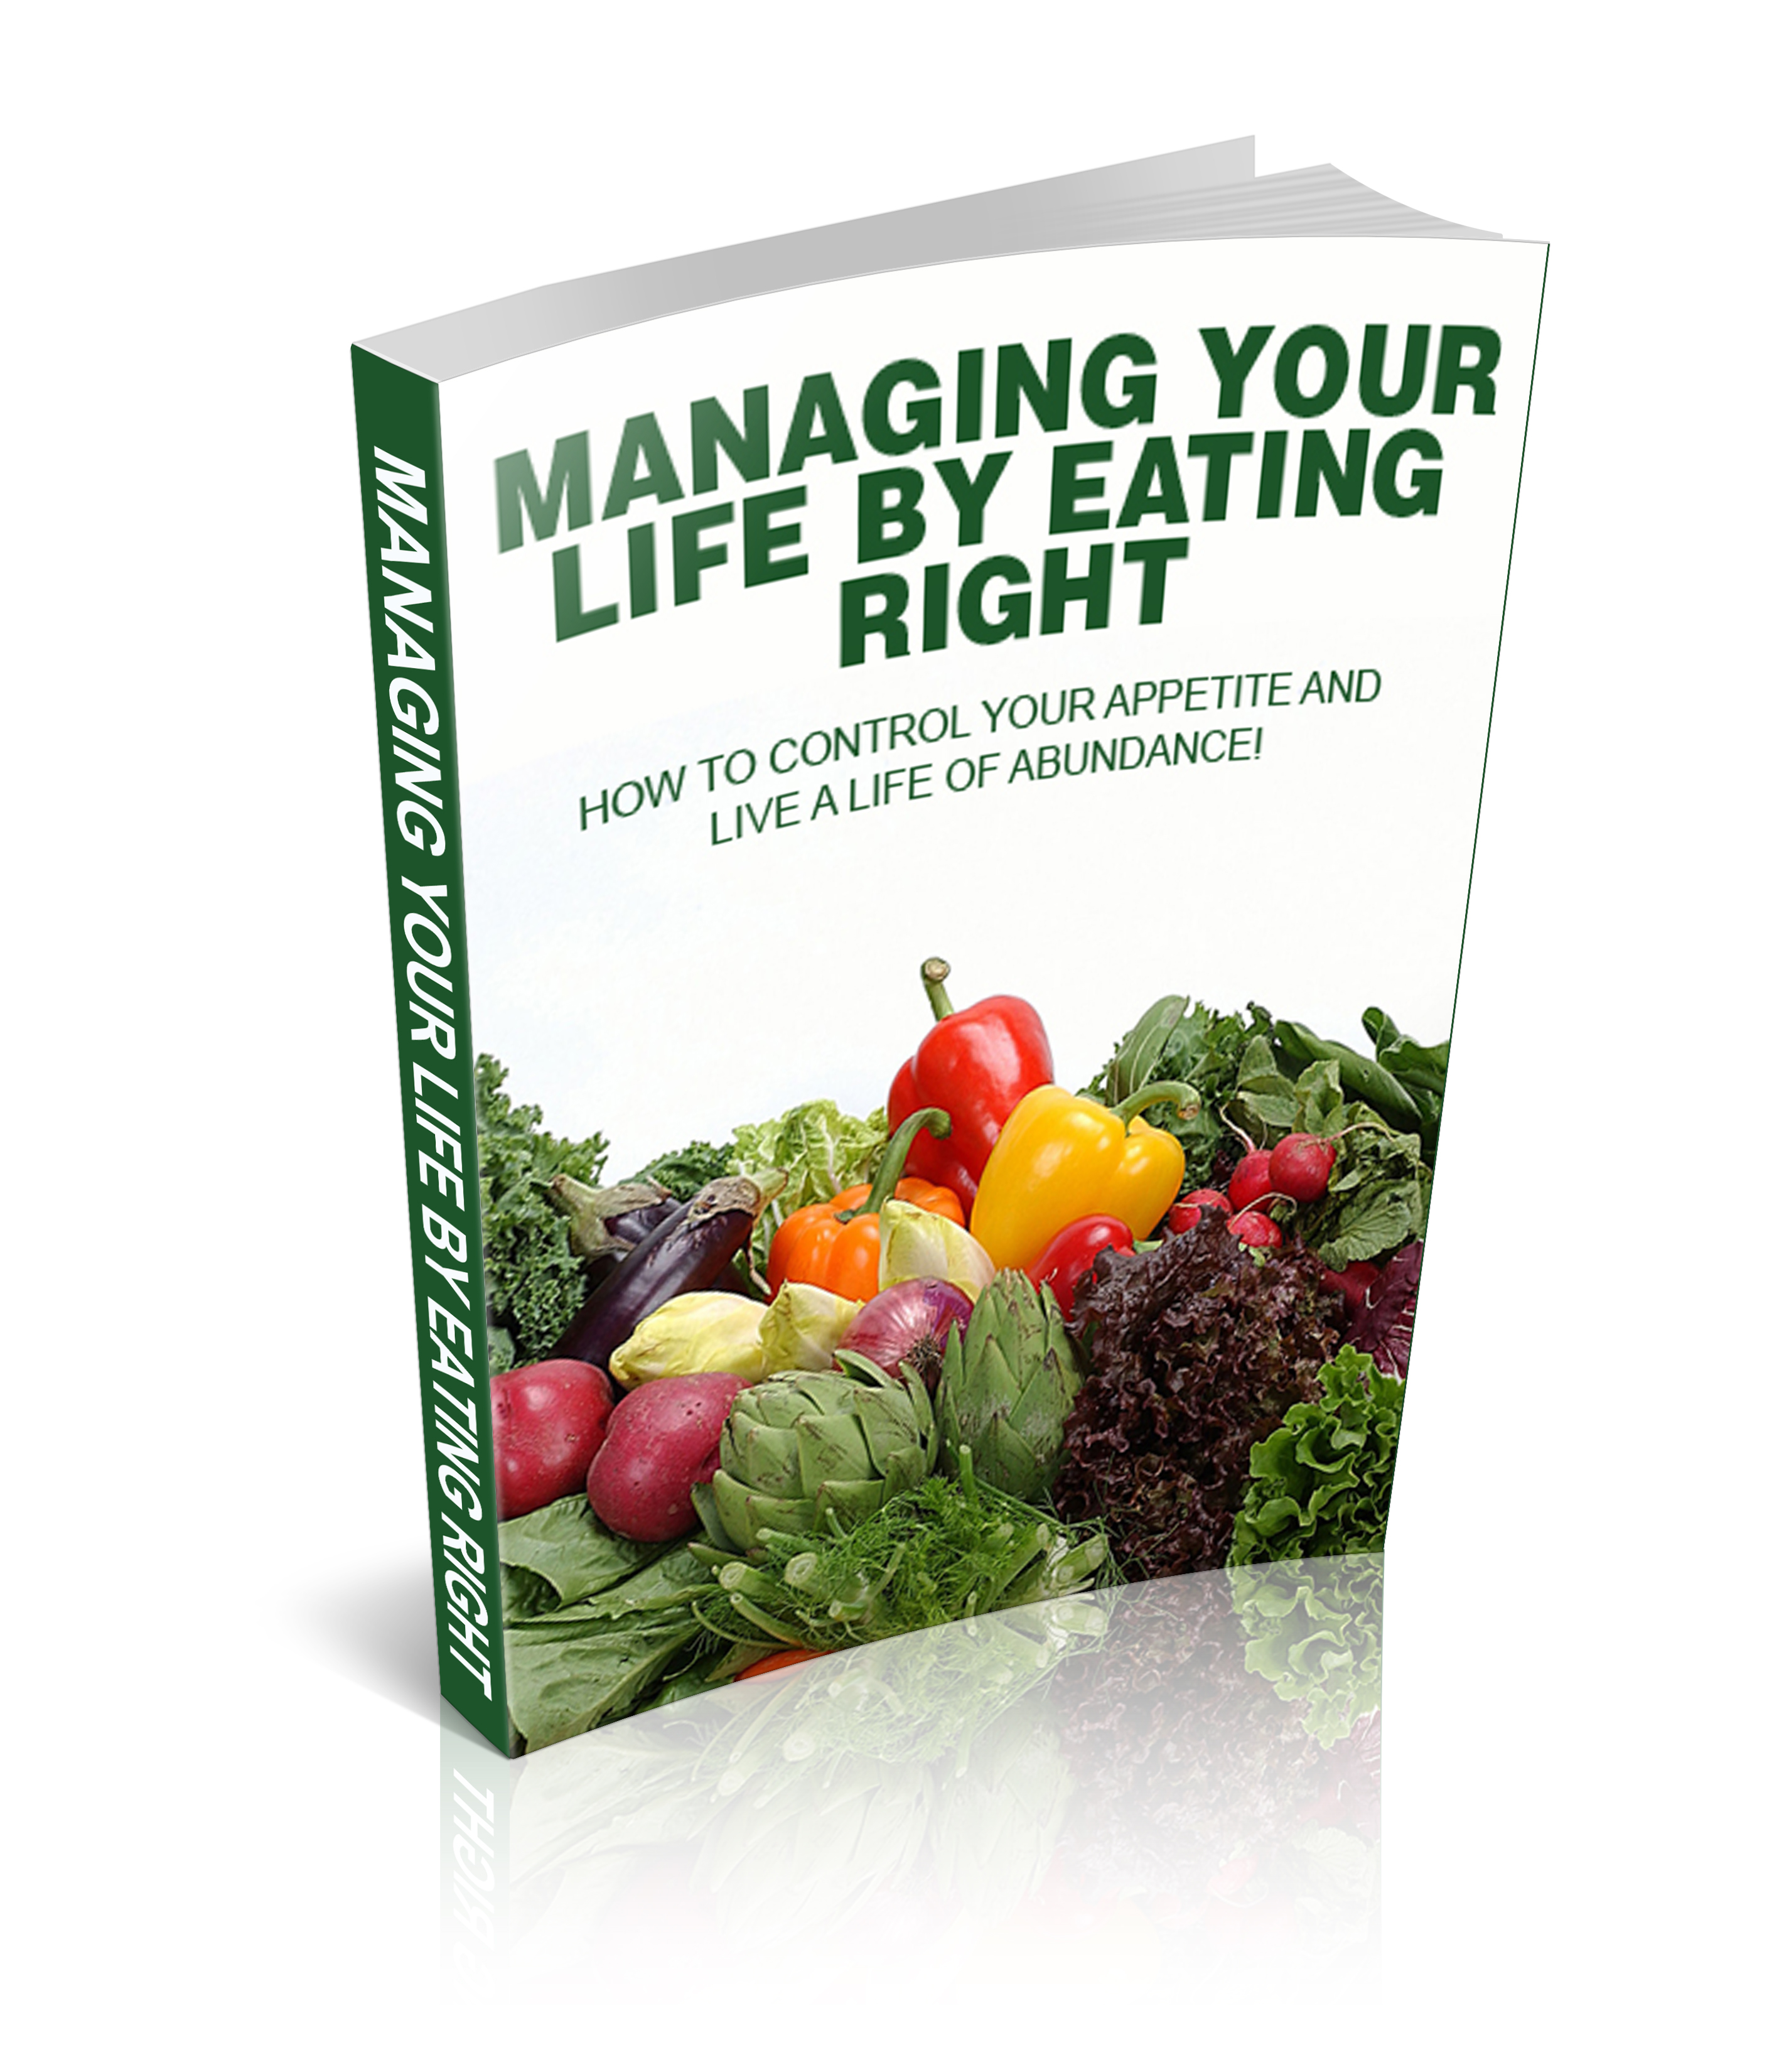 Managing Your Life By Eating Right